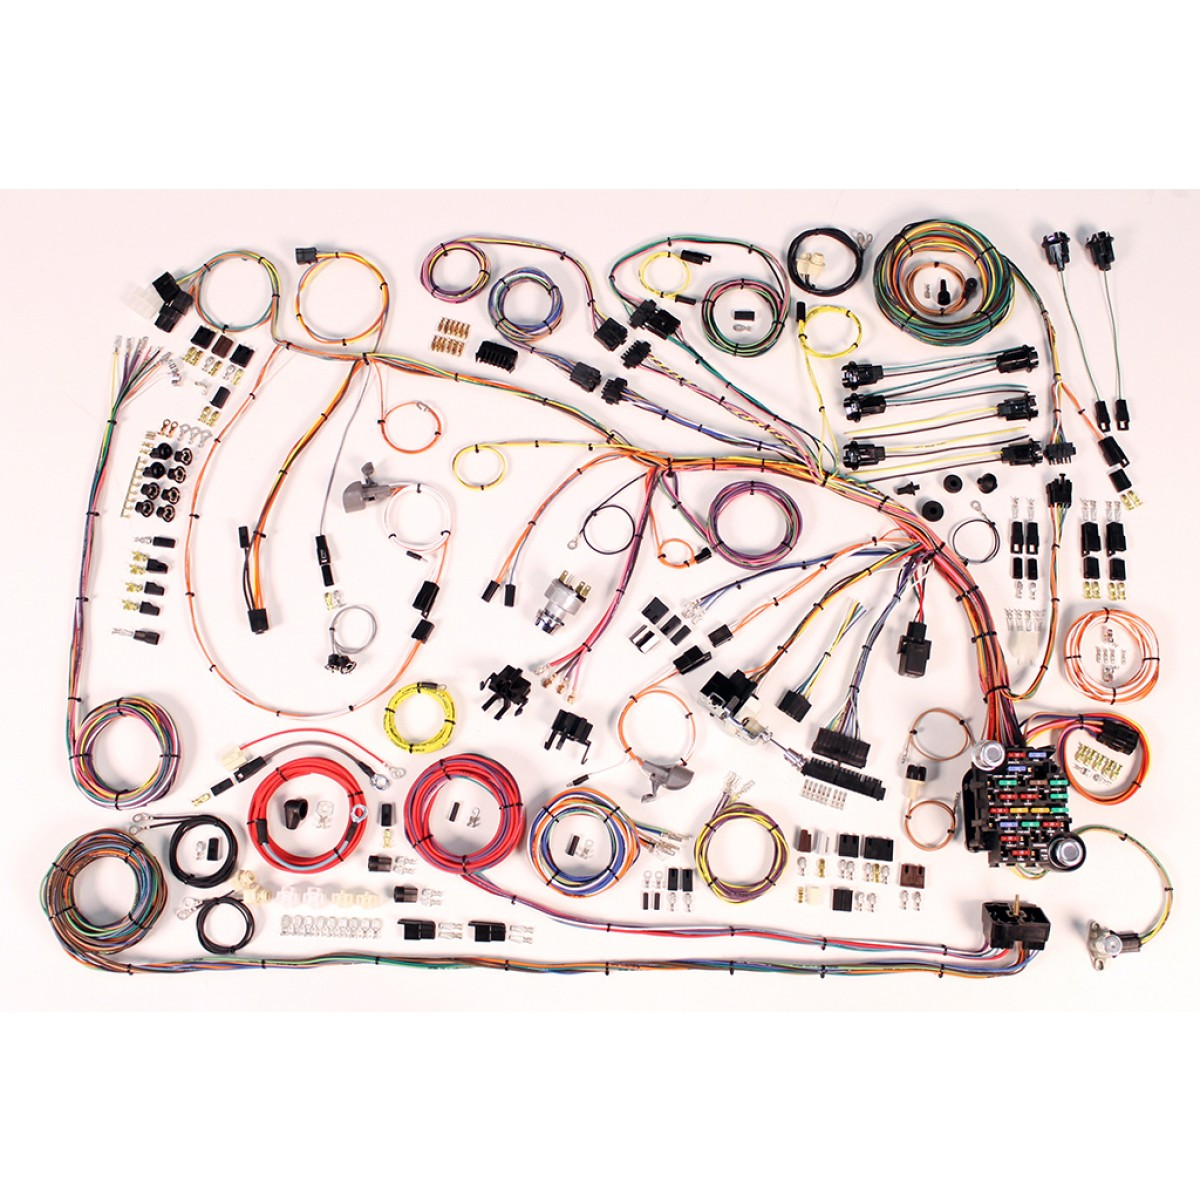 impala wire harness complete wiring harness kit  complete wiring harness kit 1966 1968 impala part 510372